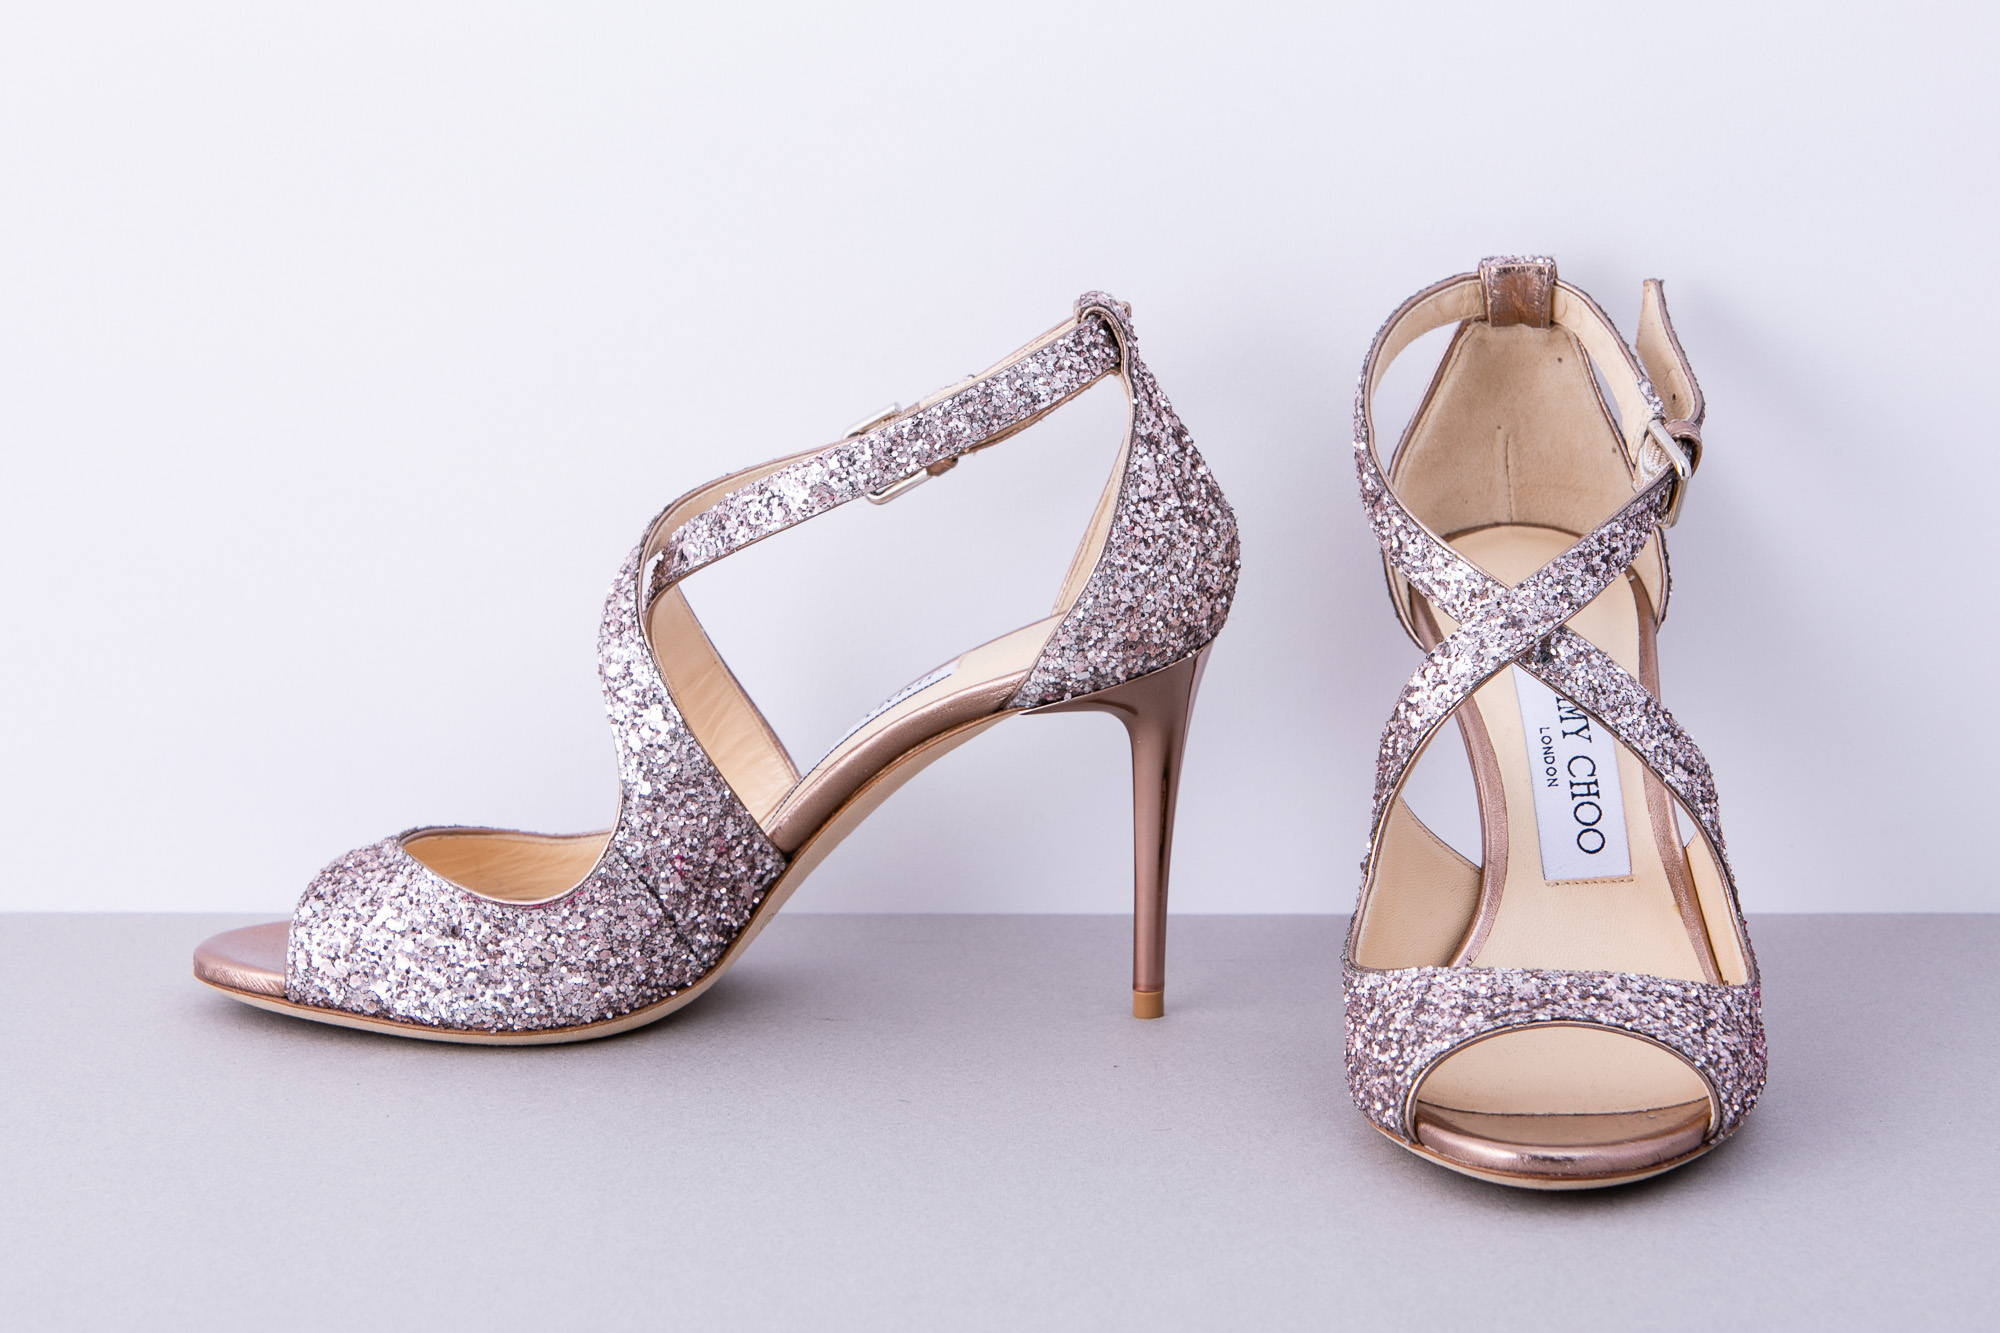 SH553115 JIMMY CHOO